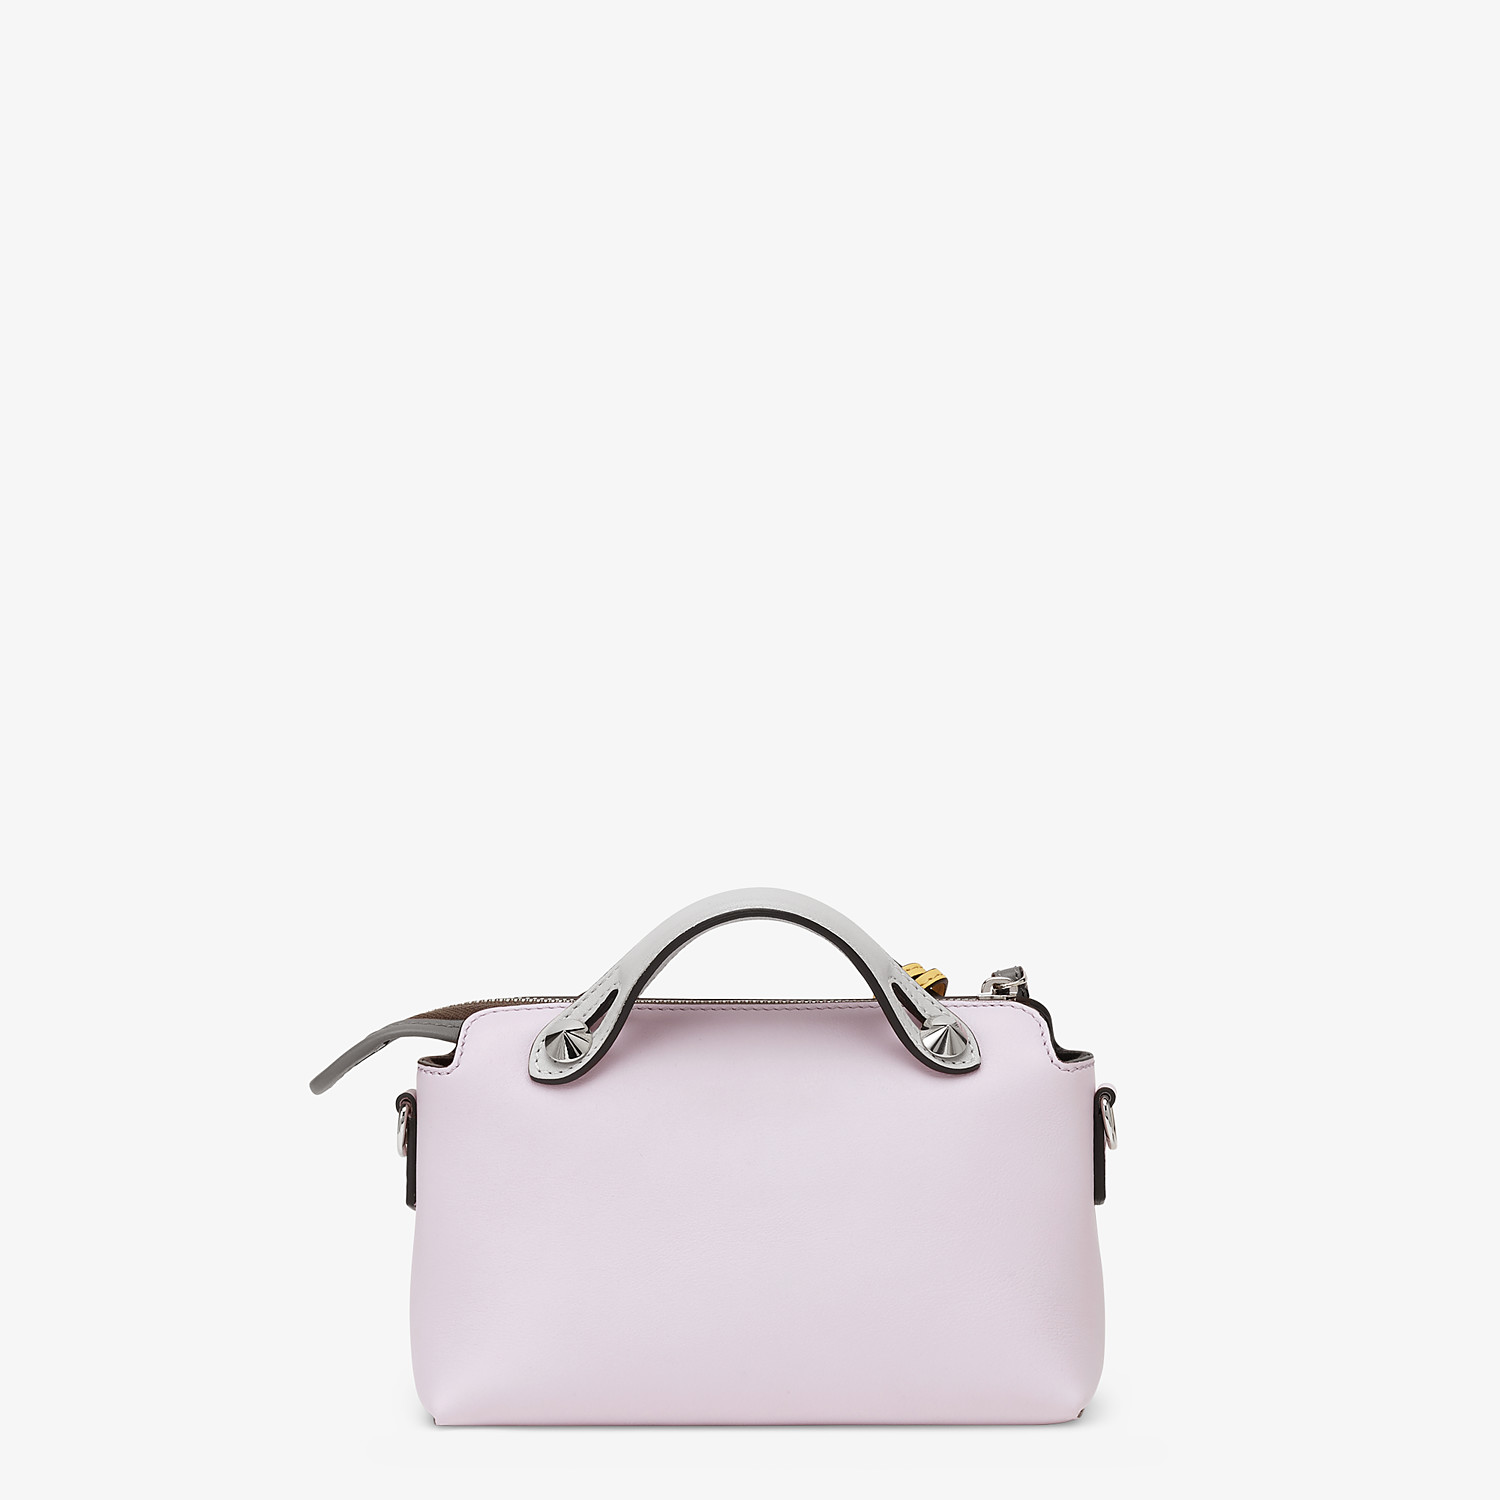 FENDI BY THE WAY MINI - Multicolor leather Boston bag - view 3 detail